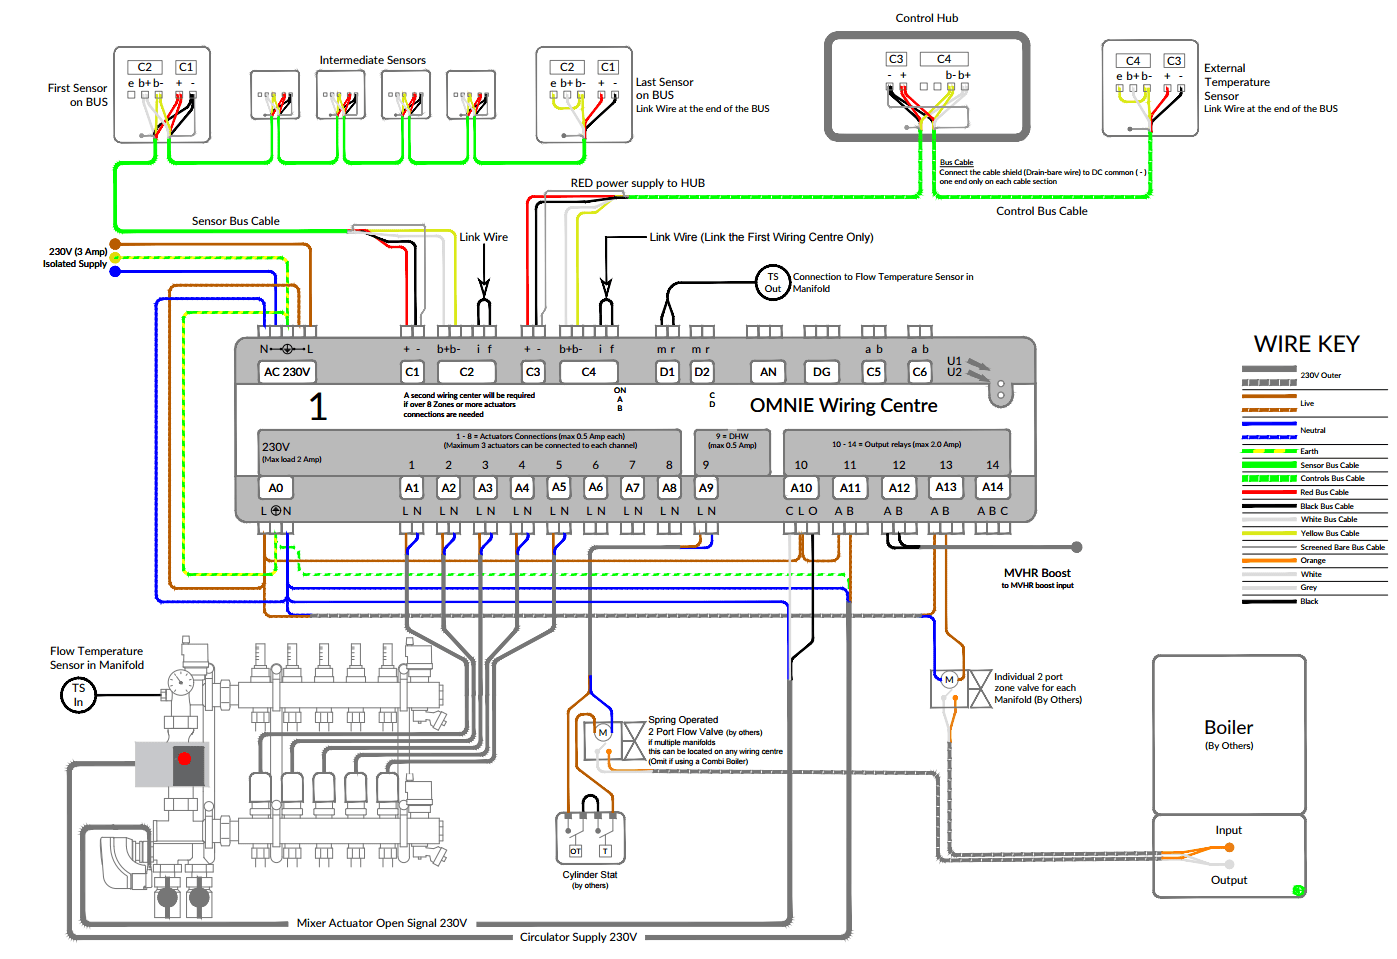 Radiant heat thermostat wiring diagram free download wiring diagram wiring diagram underfloor heating free download wiring diagram rh xwiaw us uponor wirsbo a3030101 uponor radiant thermostat cheapraybanclubmaster Images